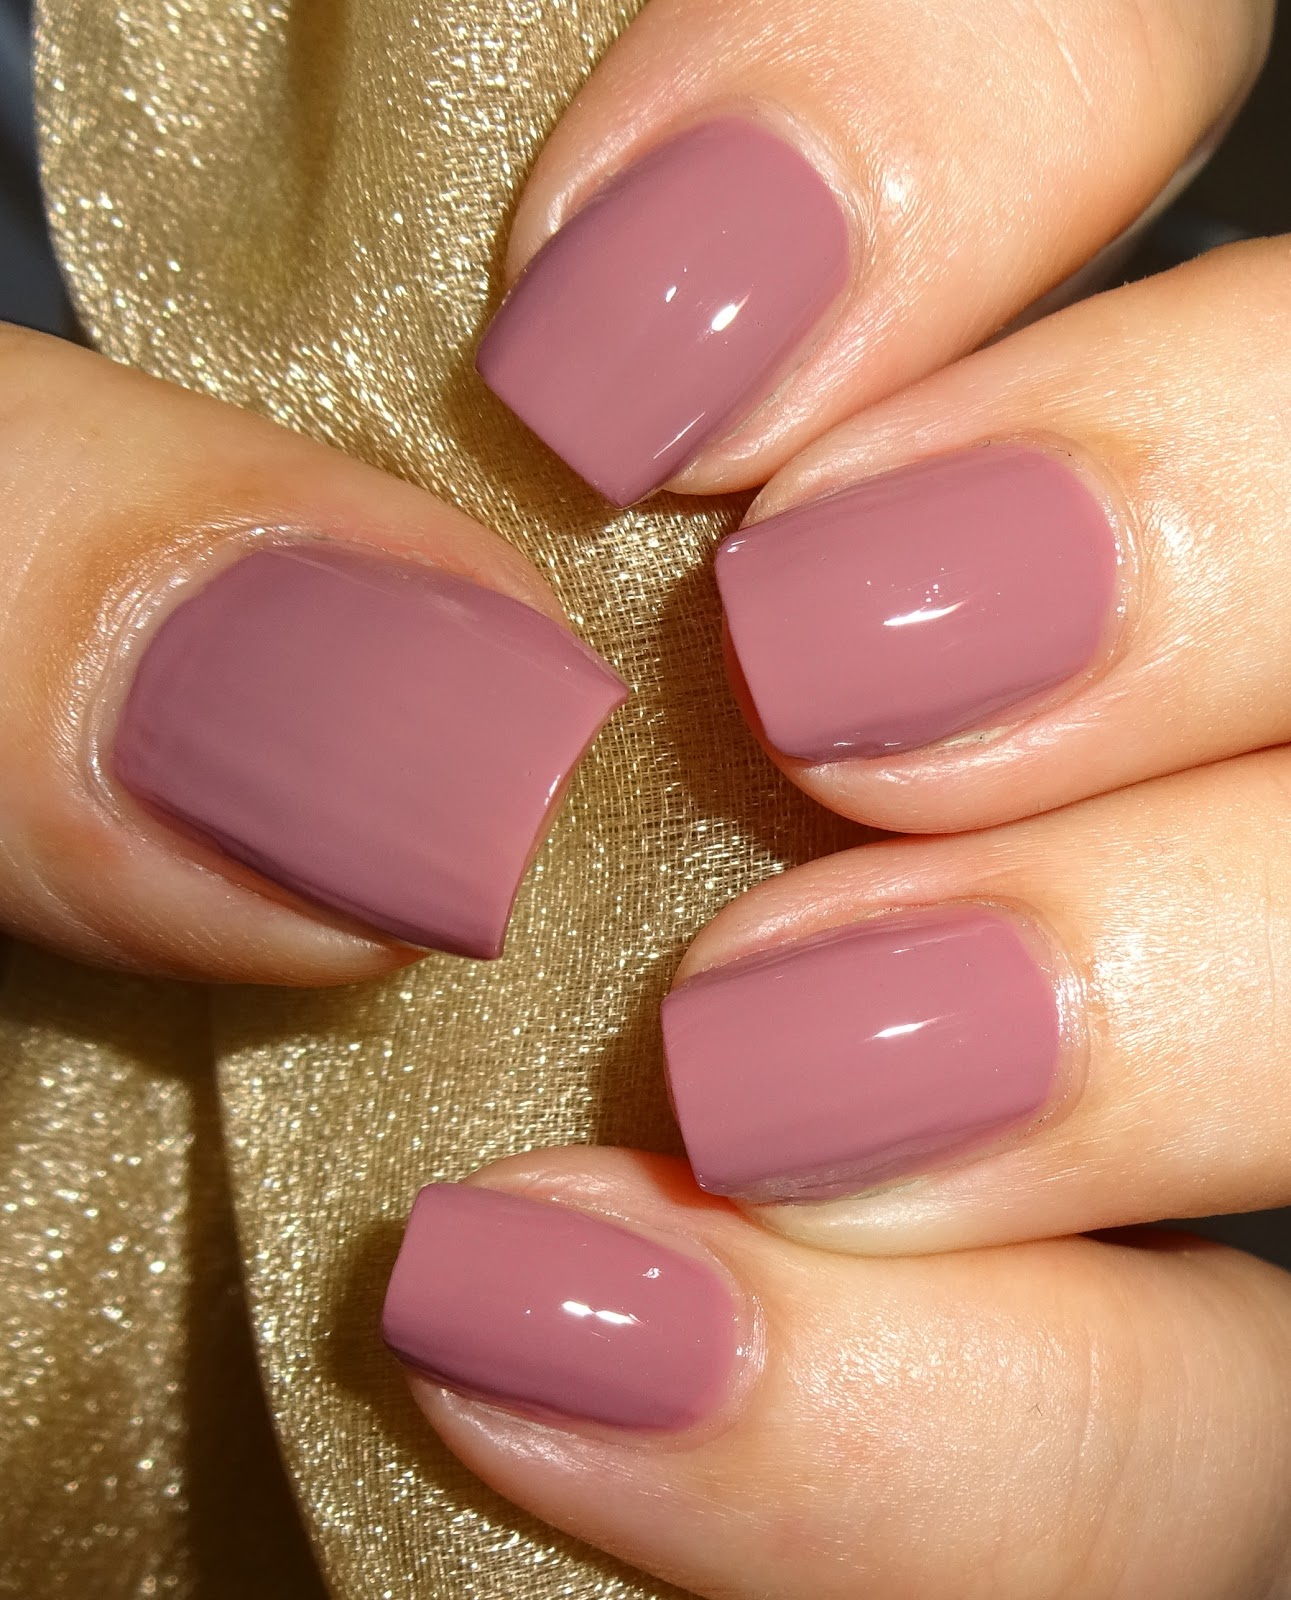 Nail Colors In Pink: Wendy's Delights: Born Pretty Store Antique Rose Pink Nail